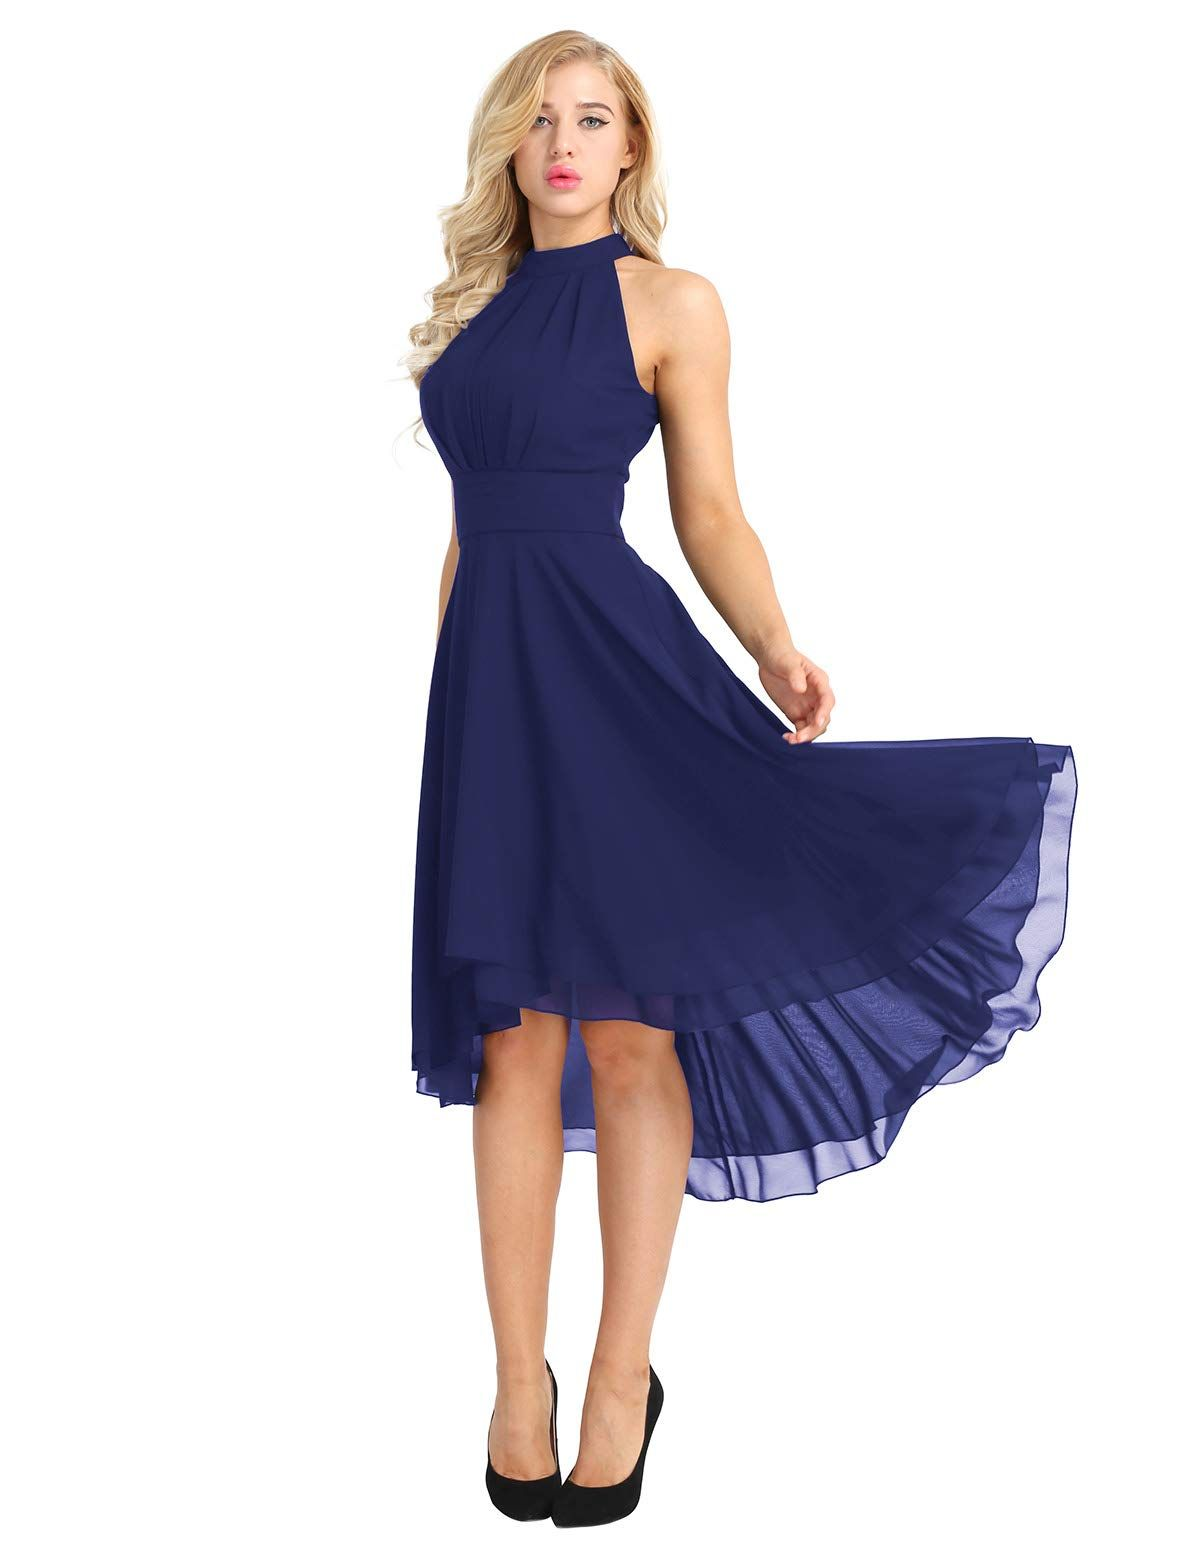 Women/'s Dress High-low Chiffon Cocktail Evening Party Prom Gown Bridesmaid Dress